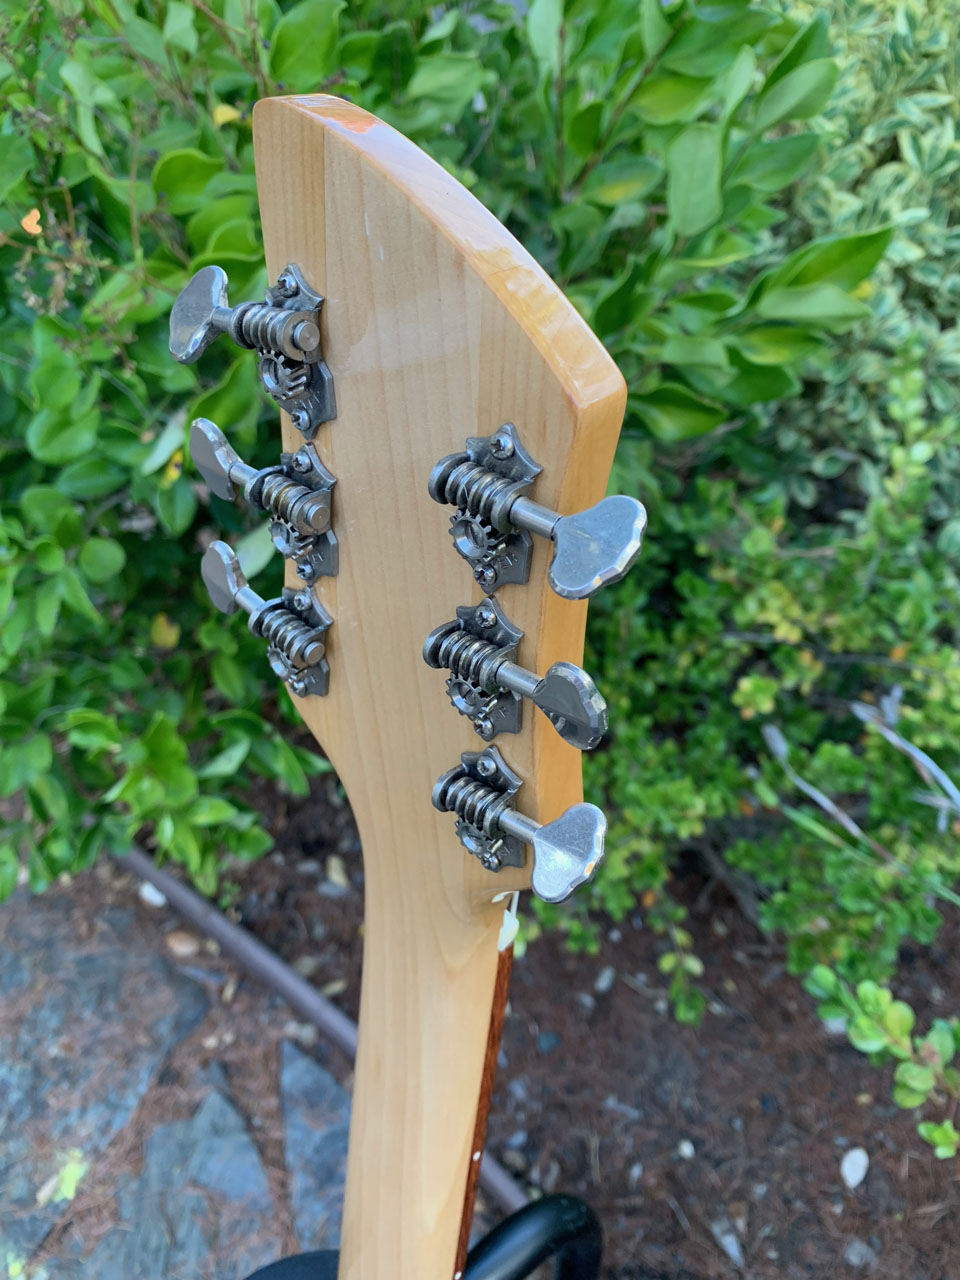 ORIGINAL GROVER TUNERS WERE ULTRASONICALLY CLEANED AND RE-USED